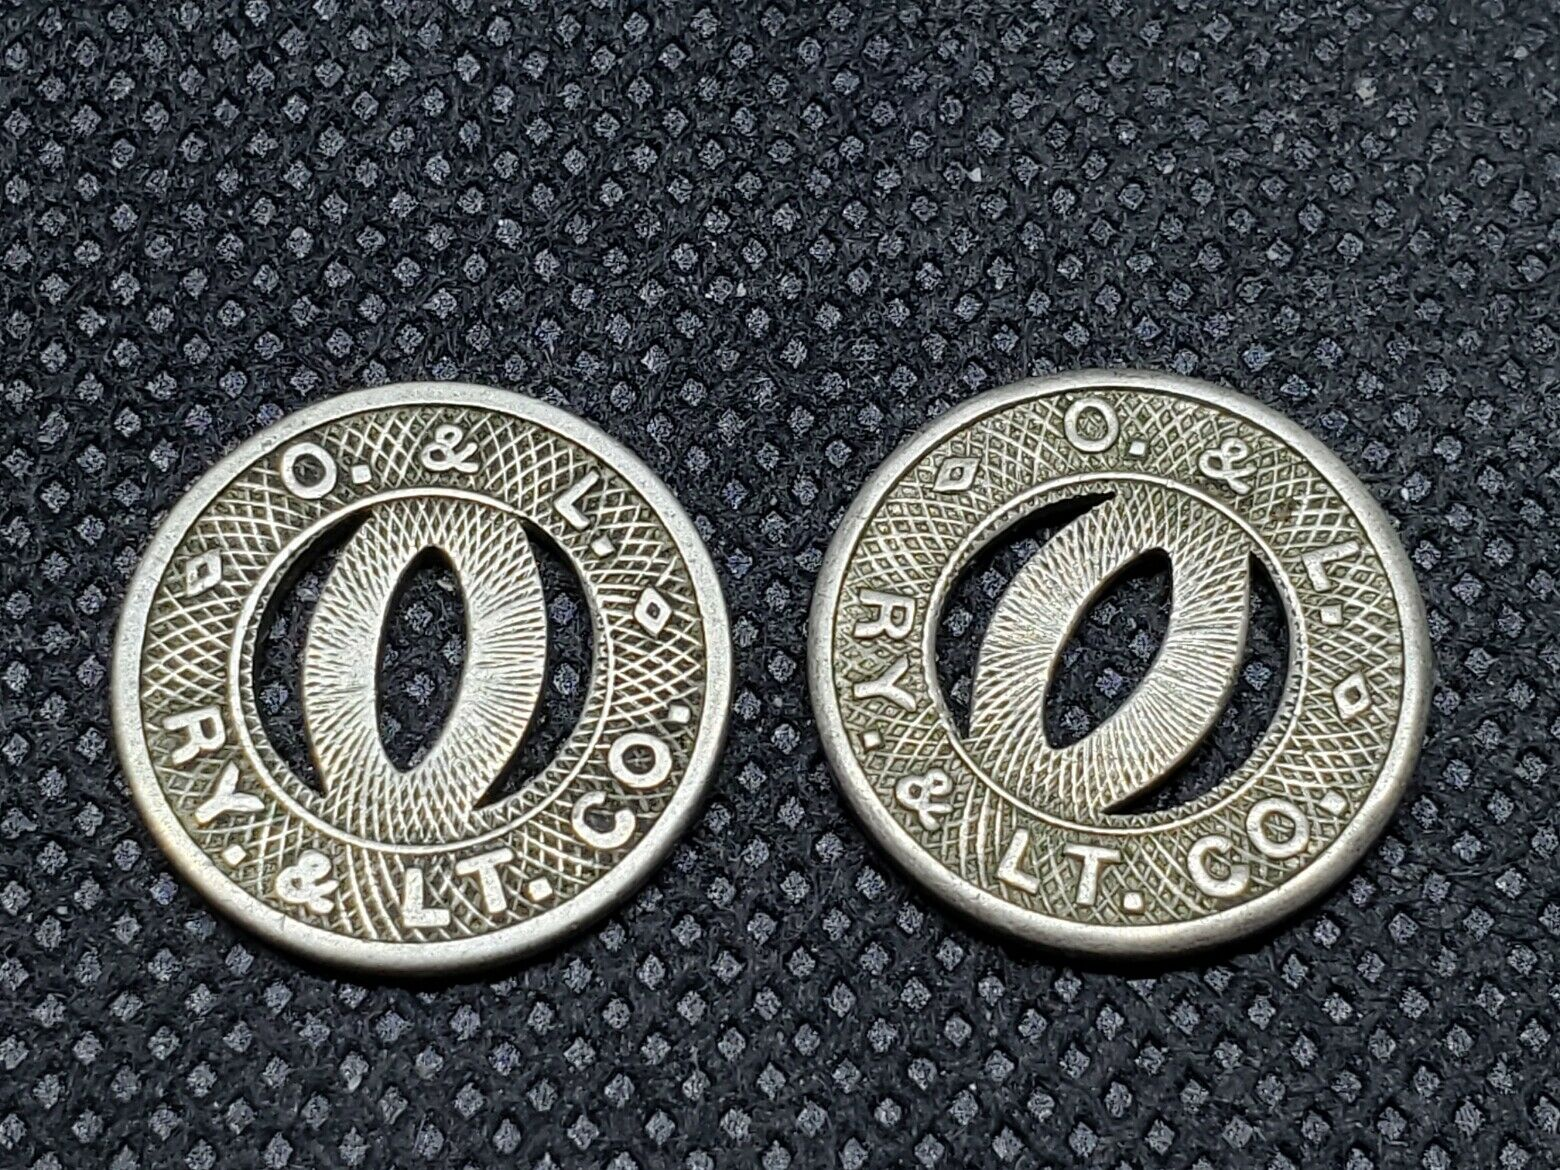 2 OMAHA TRANSIT TOKENS, SEE PICTURES, L1073 - $2.25